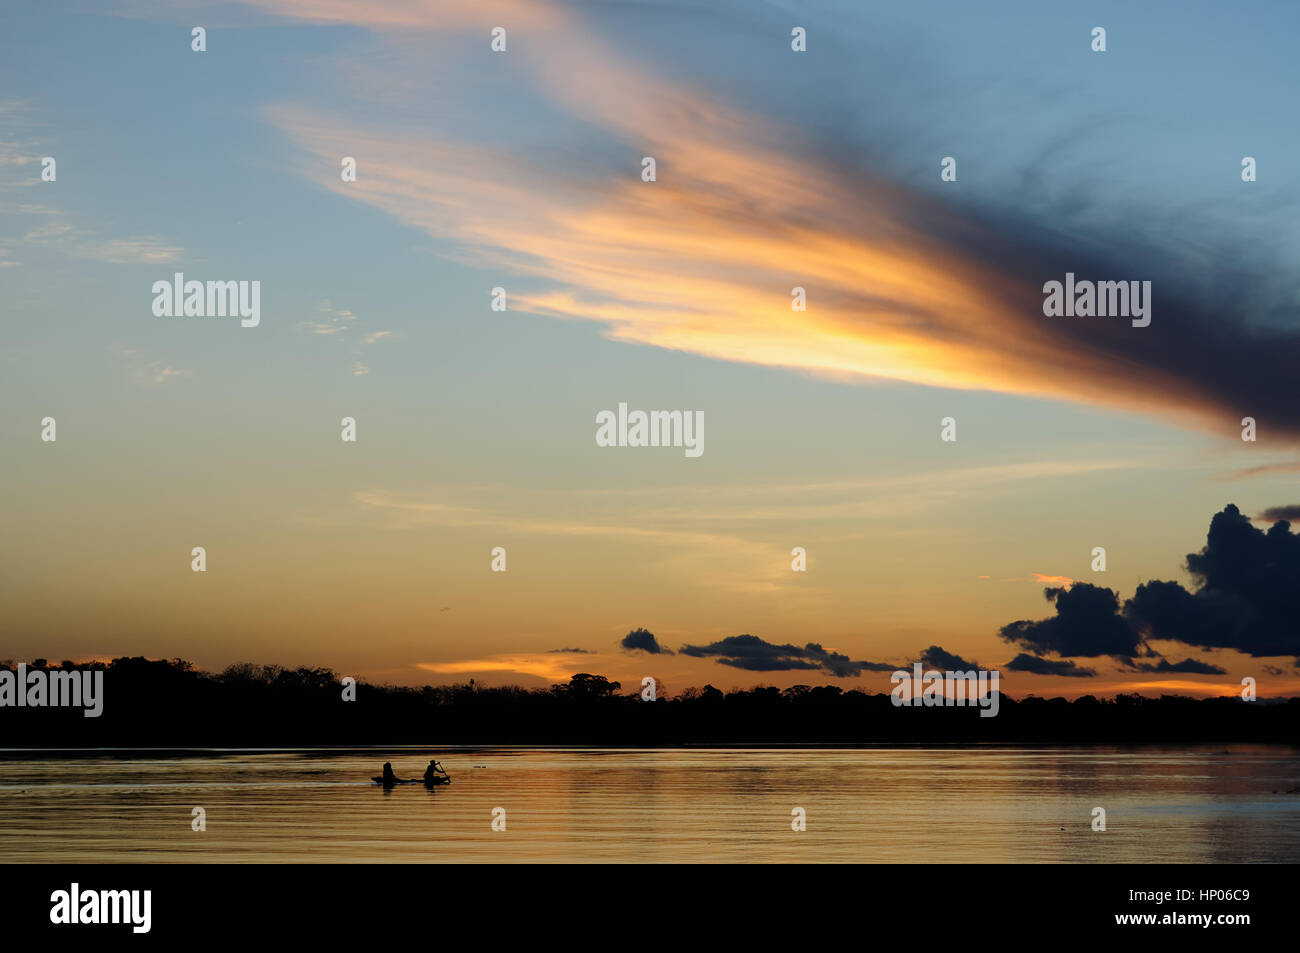 Amazon Native Americans Stock Photos Op Amp Amazonde In The Traditional Boat On Rays Of Setting Sun